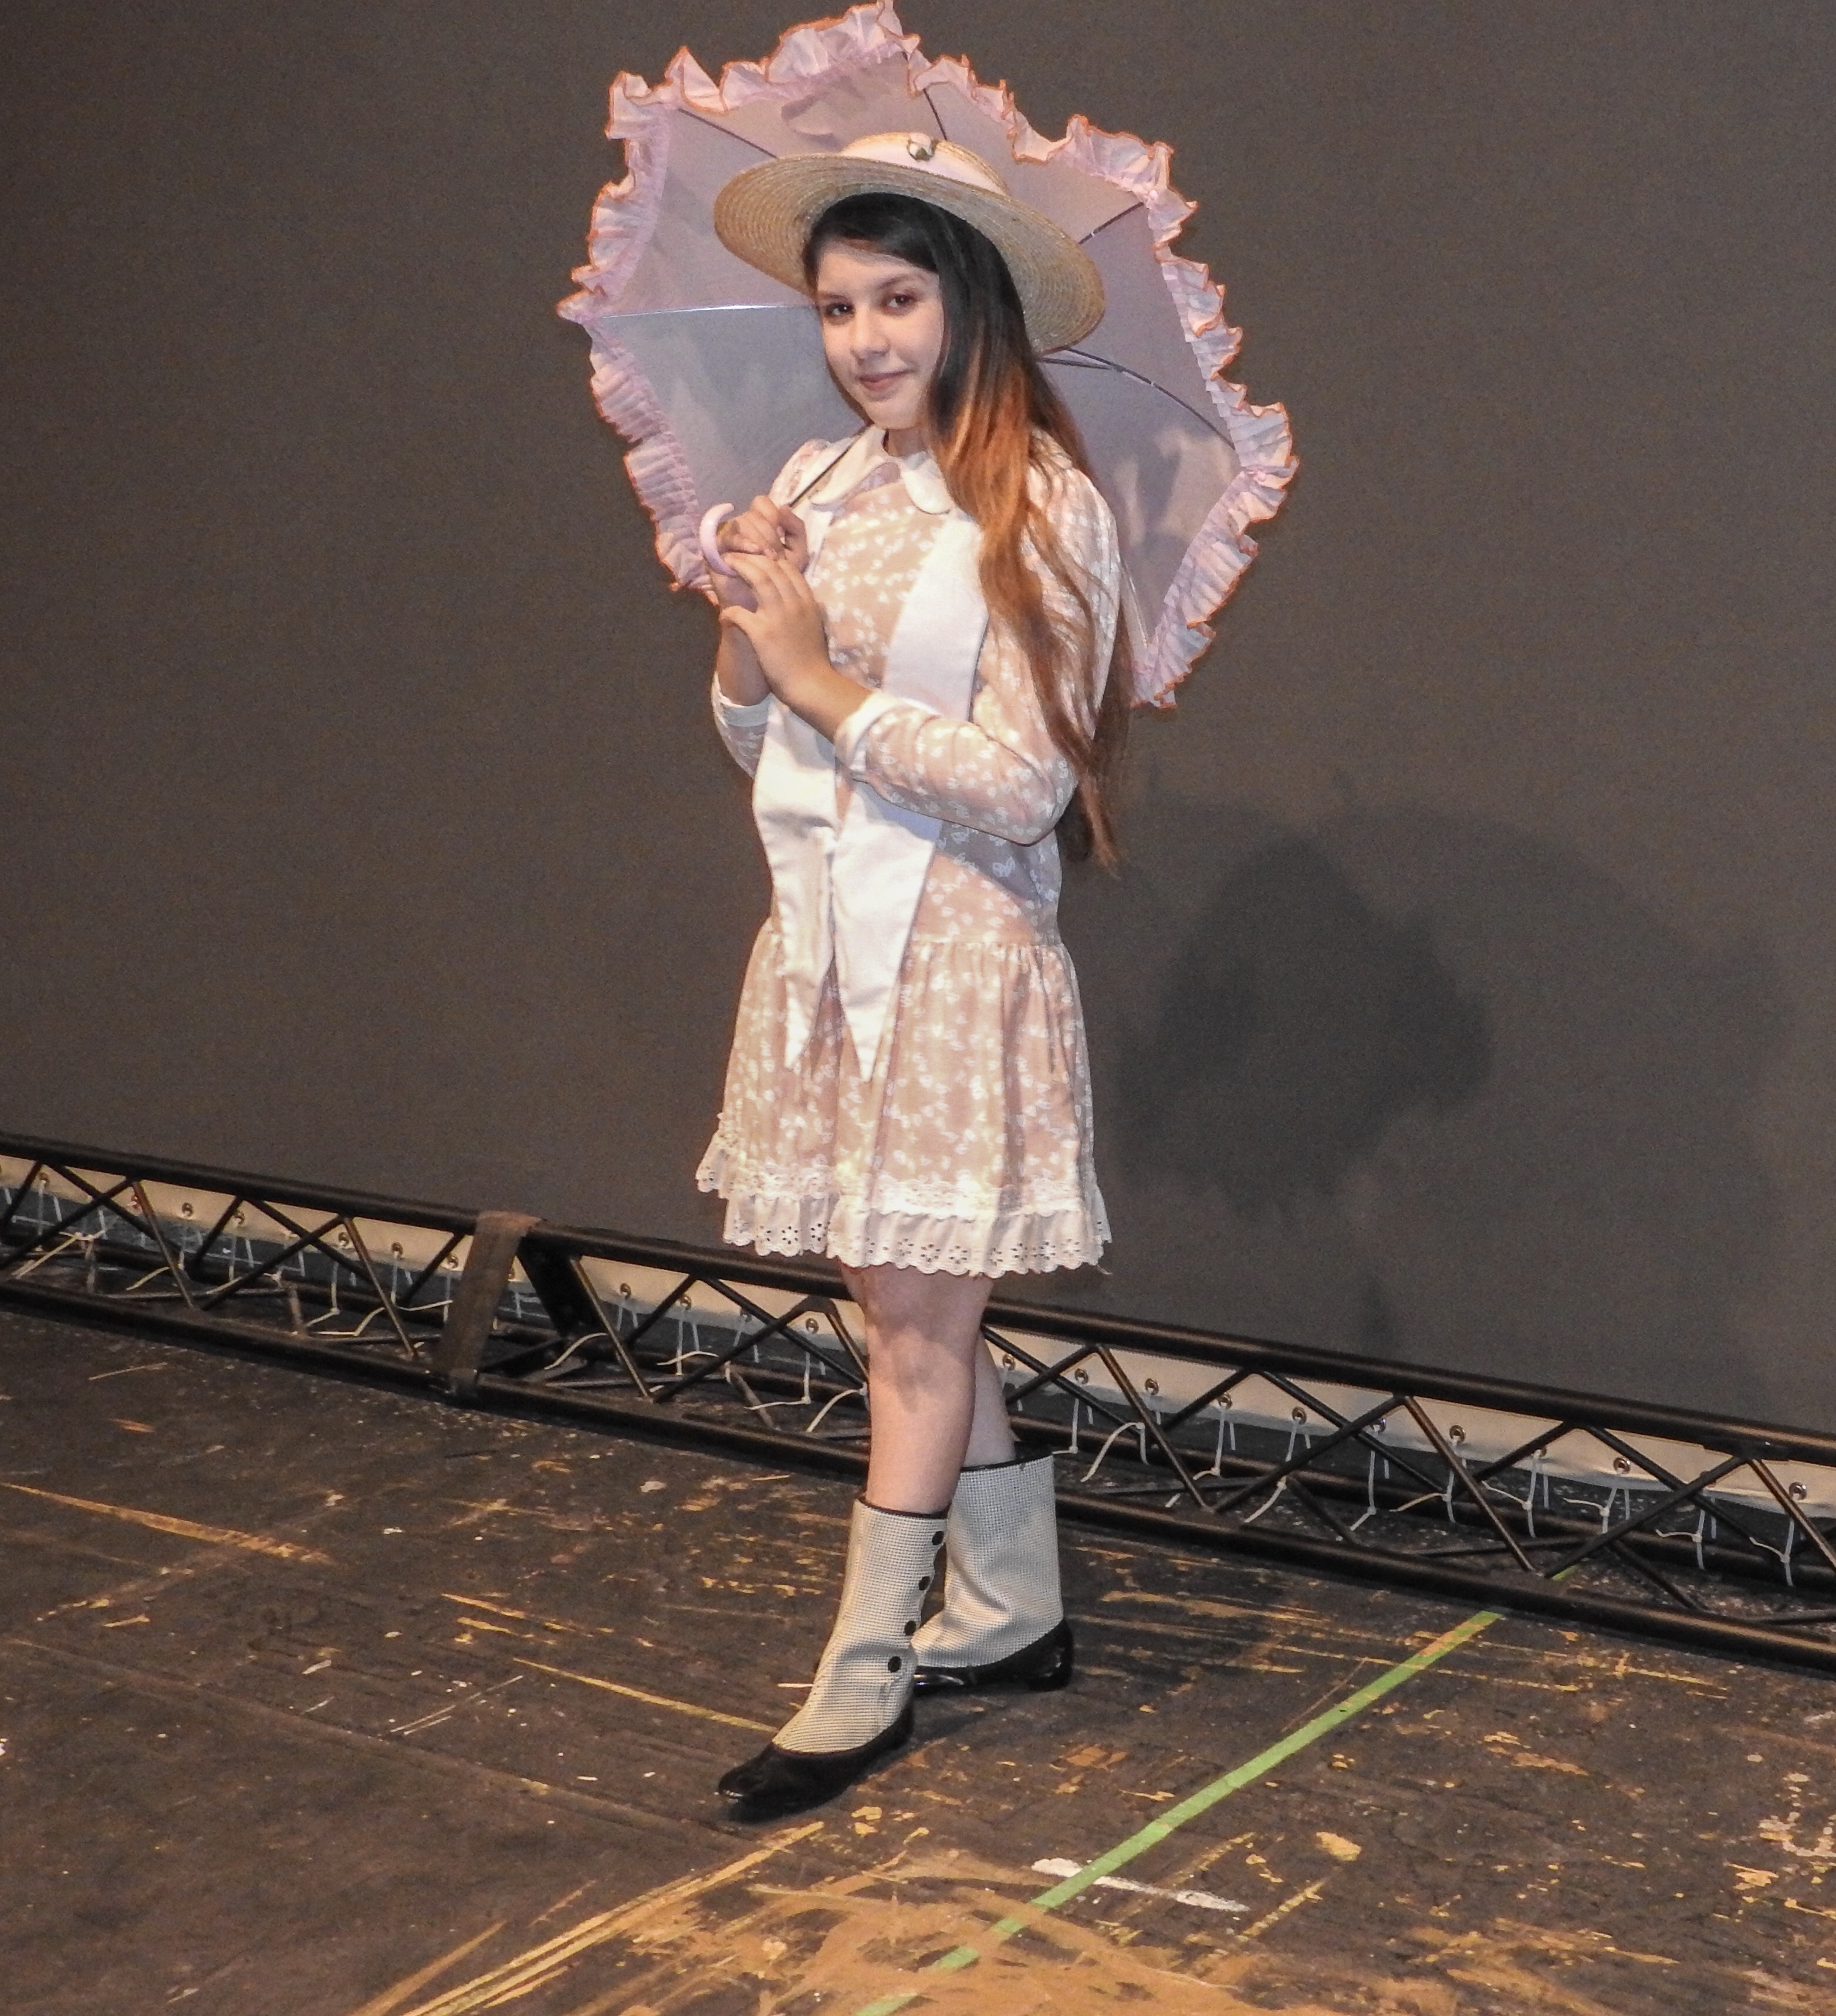 Katherine Seeley playing Jane Banks in the Henry Ford College production of Mary Poppins